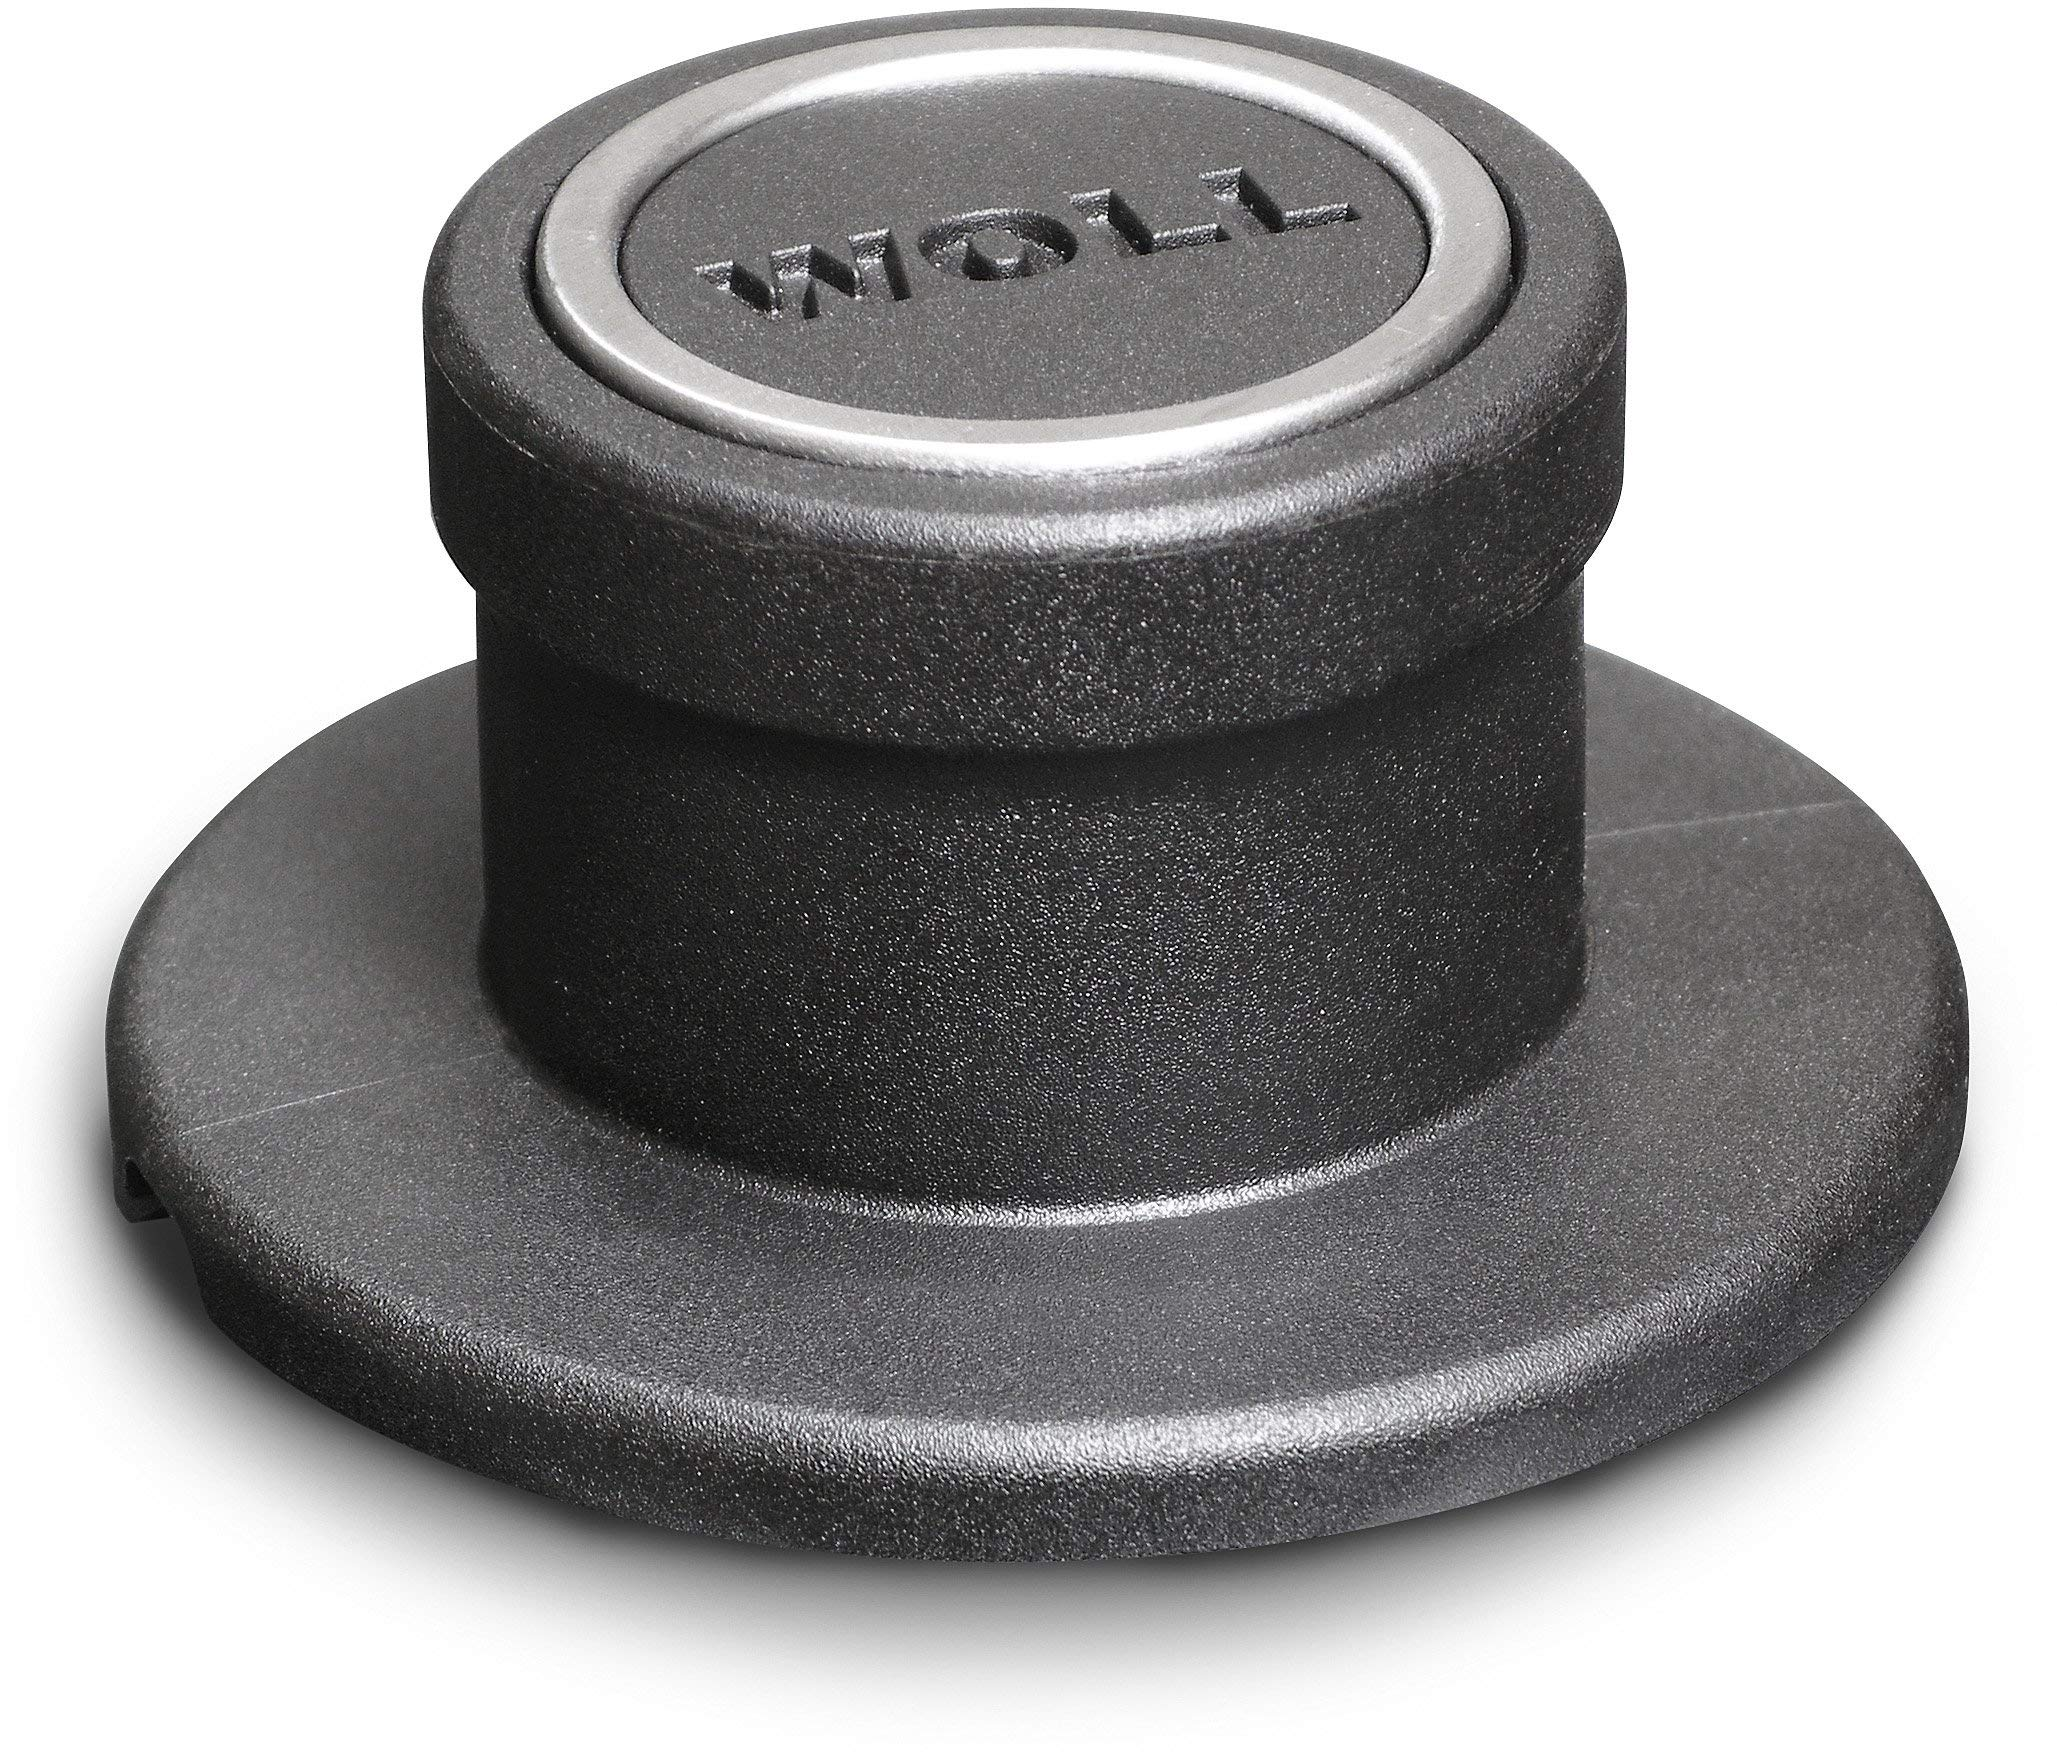 Woll Tempered Glass with Stainless Steel Rim and Vented Knob Round Lid, 8'', Clear by Woll (Image #3)